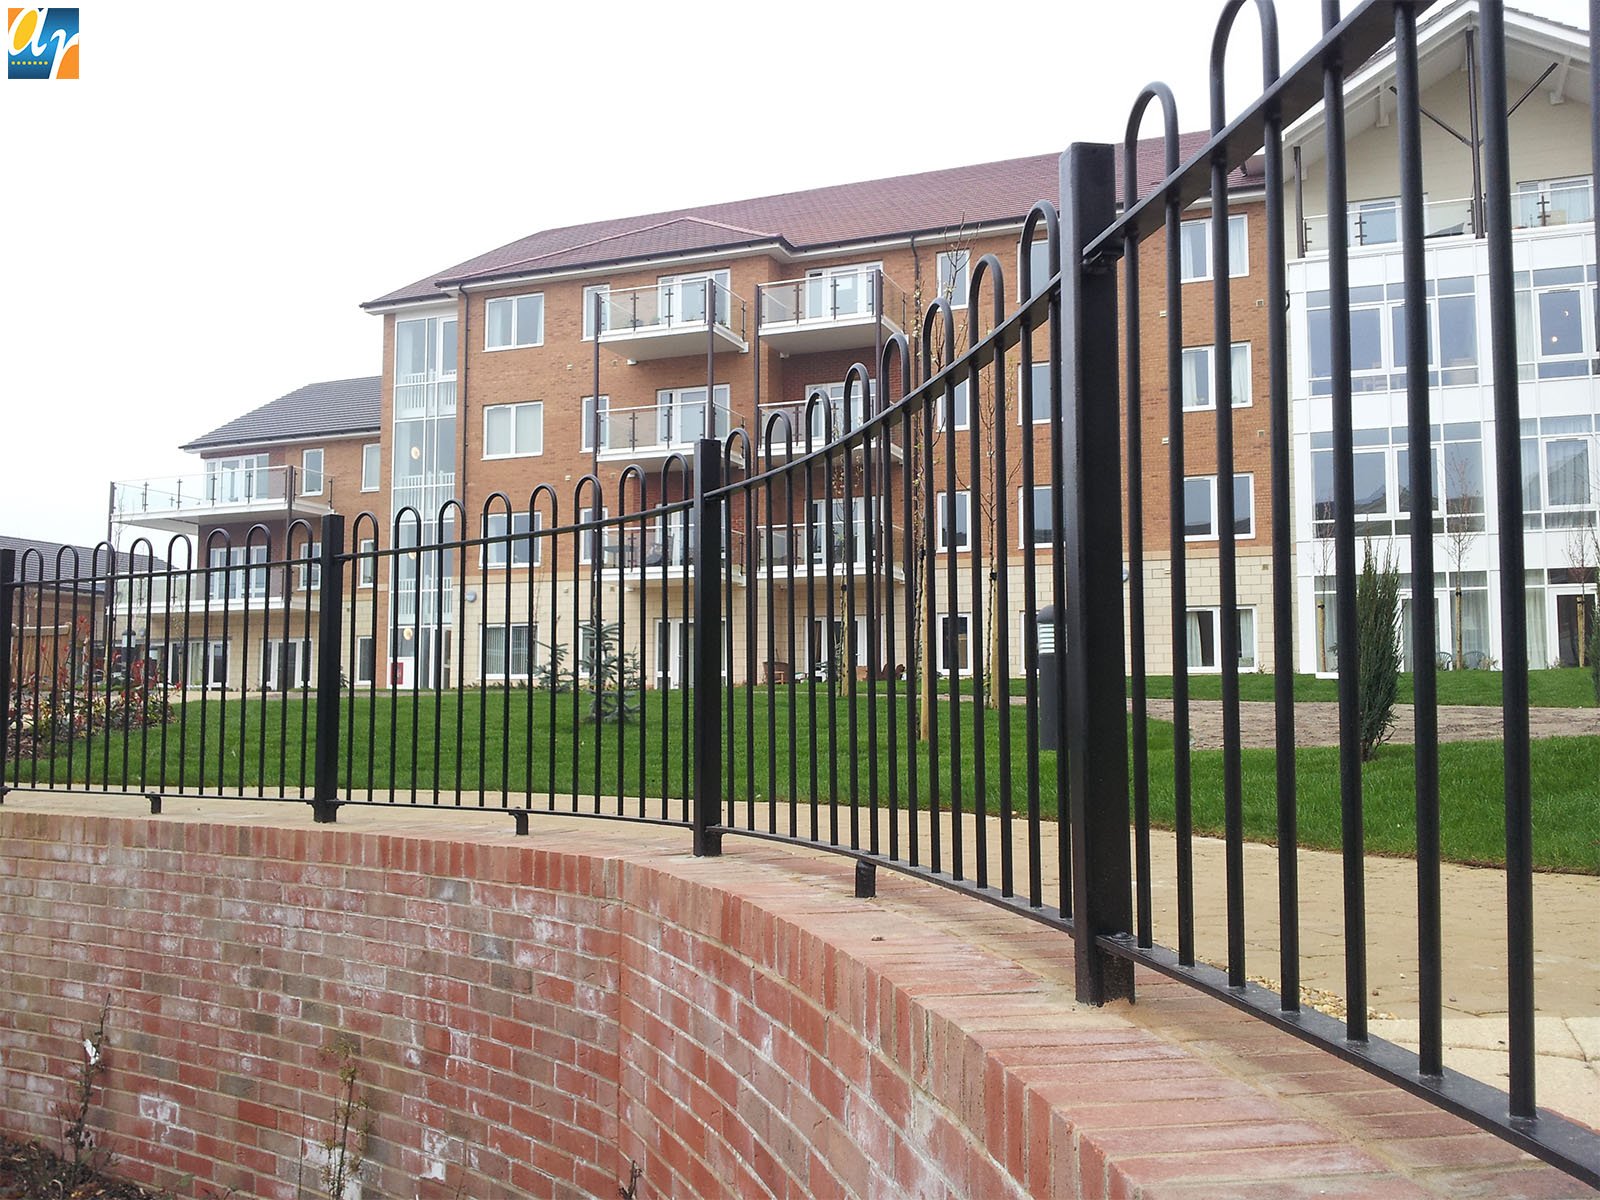 Bow Top Railings